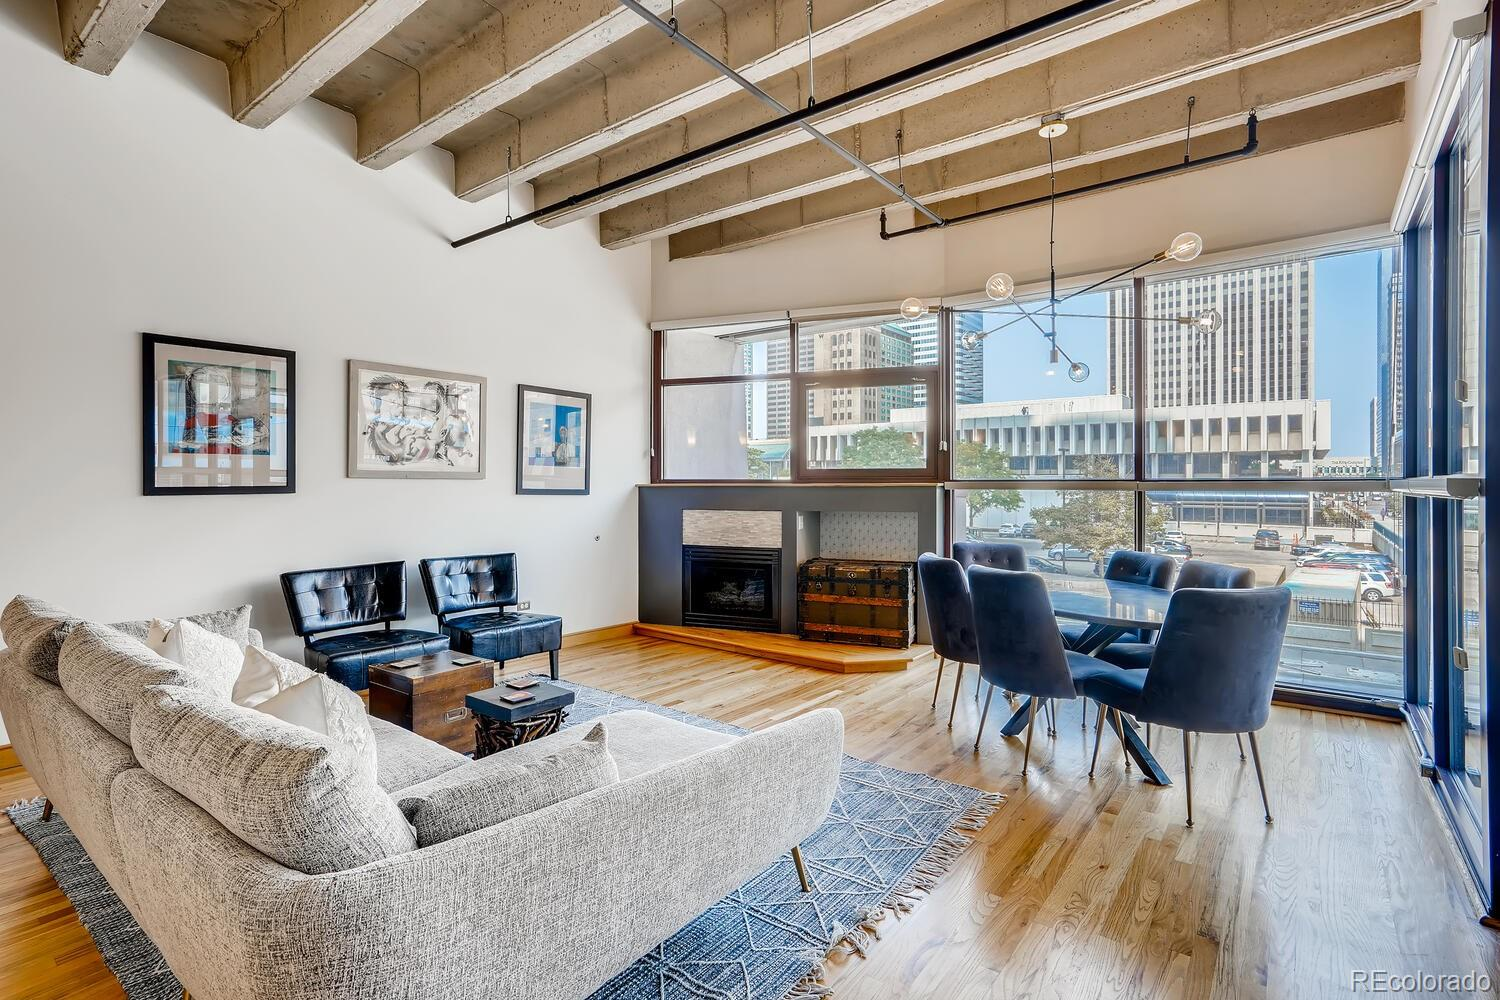 Looking to make a move to Downtown Denver? This is a great opportunity to get into a wonderful loft condo in the heart of Downtown. Steps from the preforming arts complex and all the wonderful shows there. Why rent when you can own this wonderful piece of property that is turnkey. This unit can be sold furnished so, if you are looking for a corporate rental this unit is ready to go. Complex allows semi short term rentals (30 days minimum) and this unit would rent fast. New office building being built next door. Livewire broadband to unit, which allows for extreme fast internet and wifi. This complex also has a 24 hour front desk concierge. . Enjoy the vaulted loft ceilings and open floor plan with walls of windows letting in natural light and views of the bustling city. You are able to look out and see the city, but stay private in your own enclave as the outside can't see in. A gourmet kitchen with custom cabinets, granite counters, stainless appliances and a gas range to cook up your own masterpieces when you don't feel like walking to the many wonderful restaurants Downtown. Designer updated bathrooms with custom vanities.  Cozy up to the gas fireplace, enjoy a good book or Netflix show in the winter while watching the snowflakes cover the city. Take some time for yourself on the roof top pool/sundeck or the complexes gym. Complex also has a conference room available to rent. This unit comes with a deeded oversized wide parking spot steps from the elevator, so if you want to escape to the mountains for skiing or hiking, grab you gear from the storage locker, and head to your car. If you enjoy theatre, sports, or events, this is the place for you! This place is minutes to the preforming arts center, Pepsi Center, Coors Field, ect. Come home to the city!   HOA includes heating, air conditioning, water, trash, recycling, heated garage, window washing 2x per year, security, consierge, in addition to all the amenities and building maintenance.